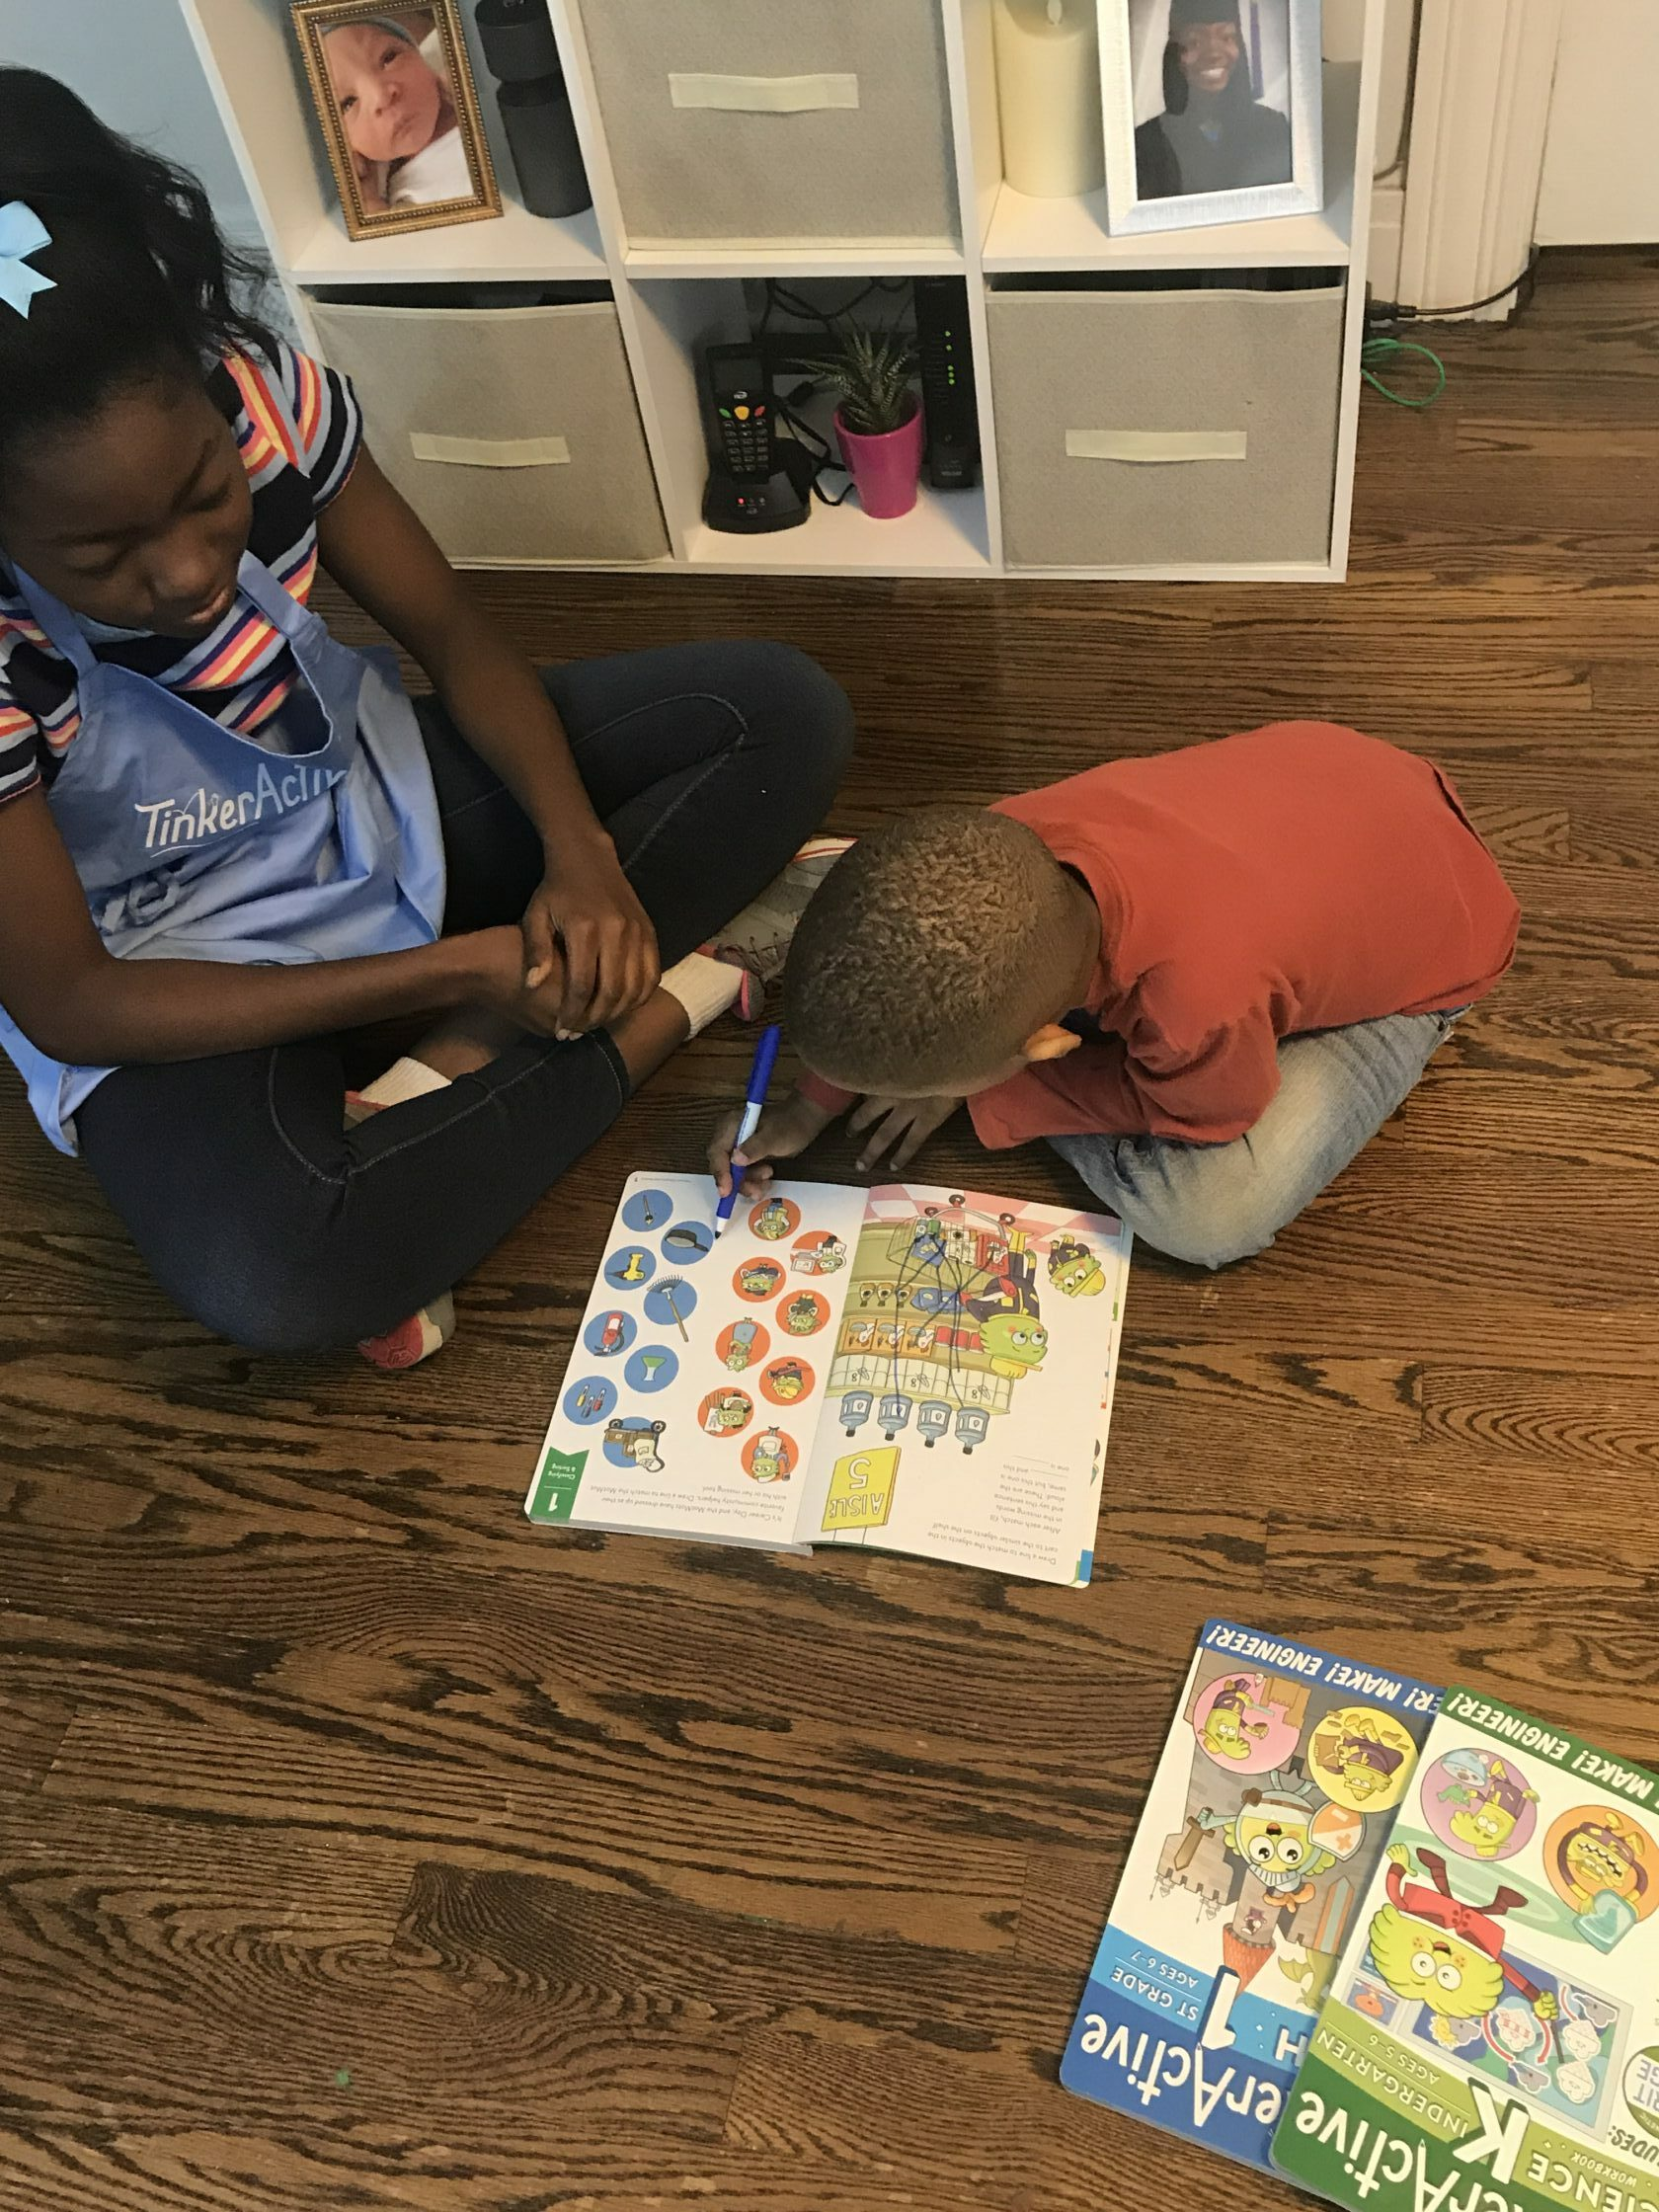 Interactive Learning With TinkerActive Workbooks For K-2nd Grade